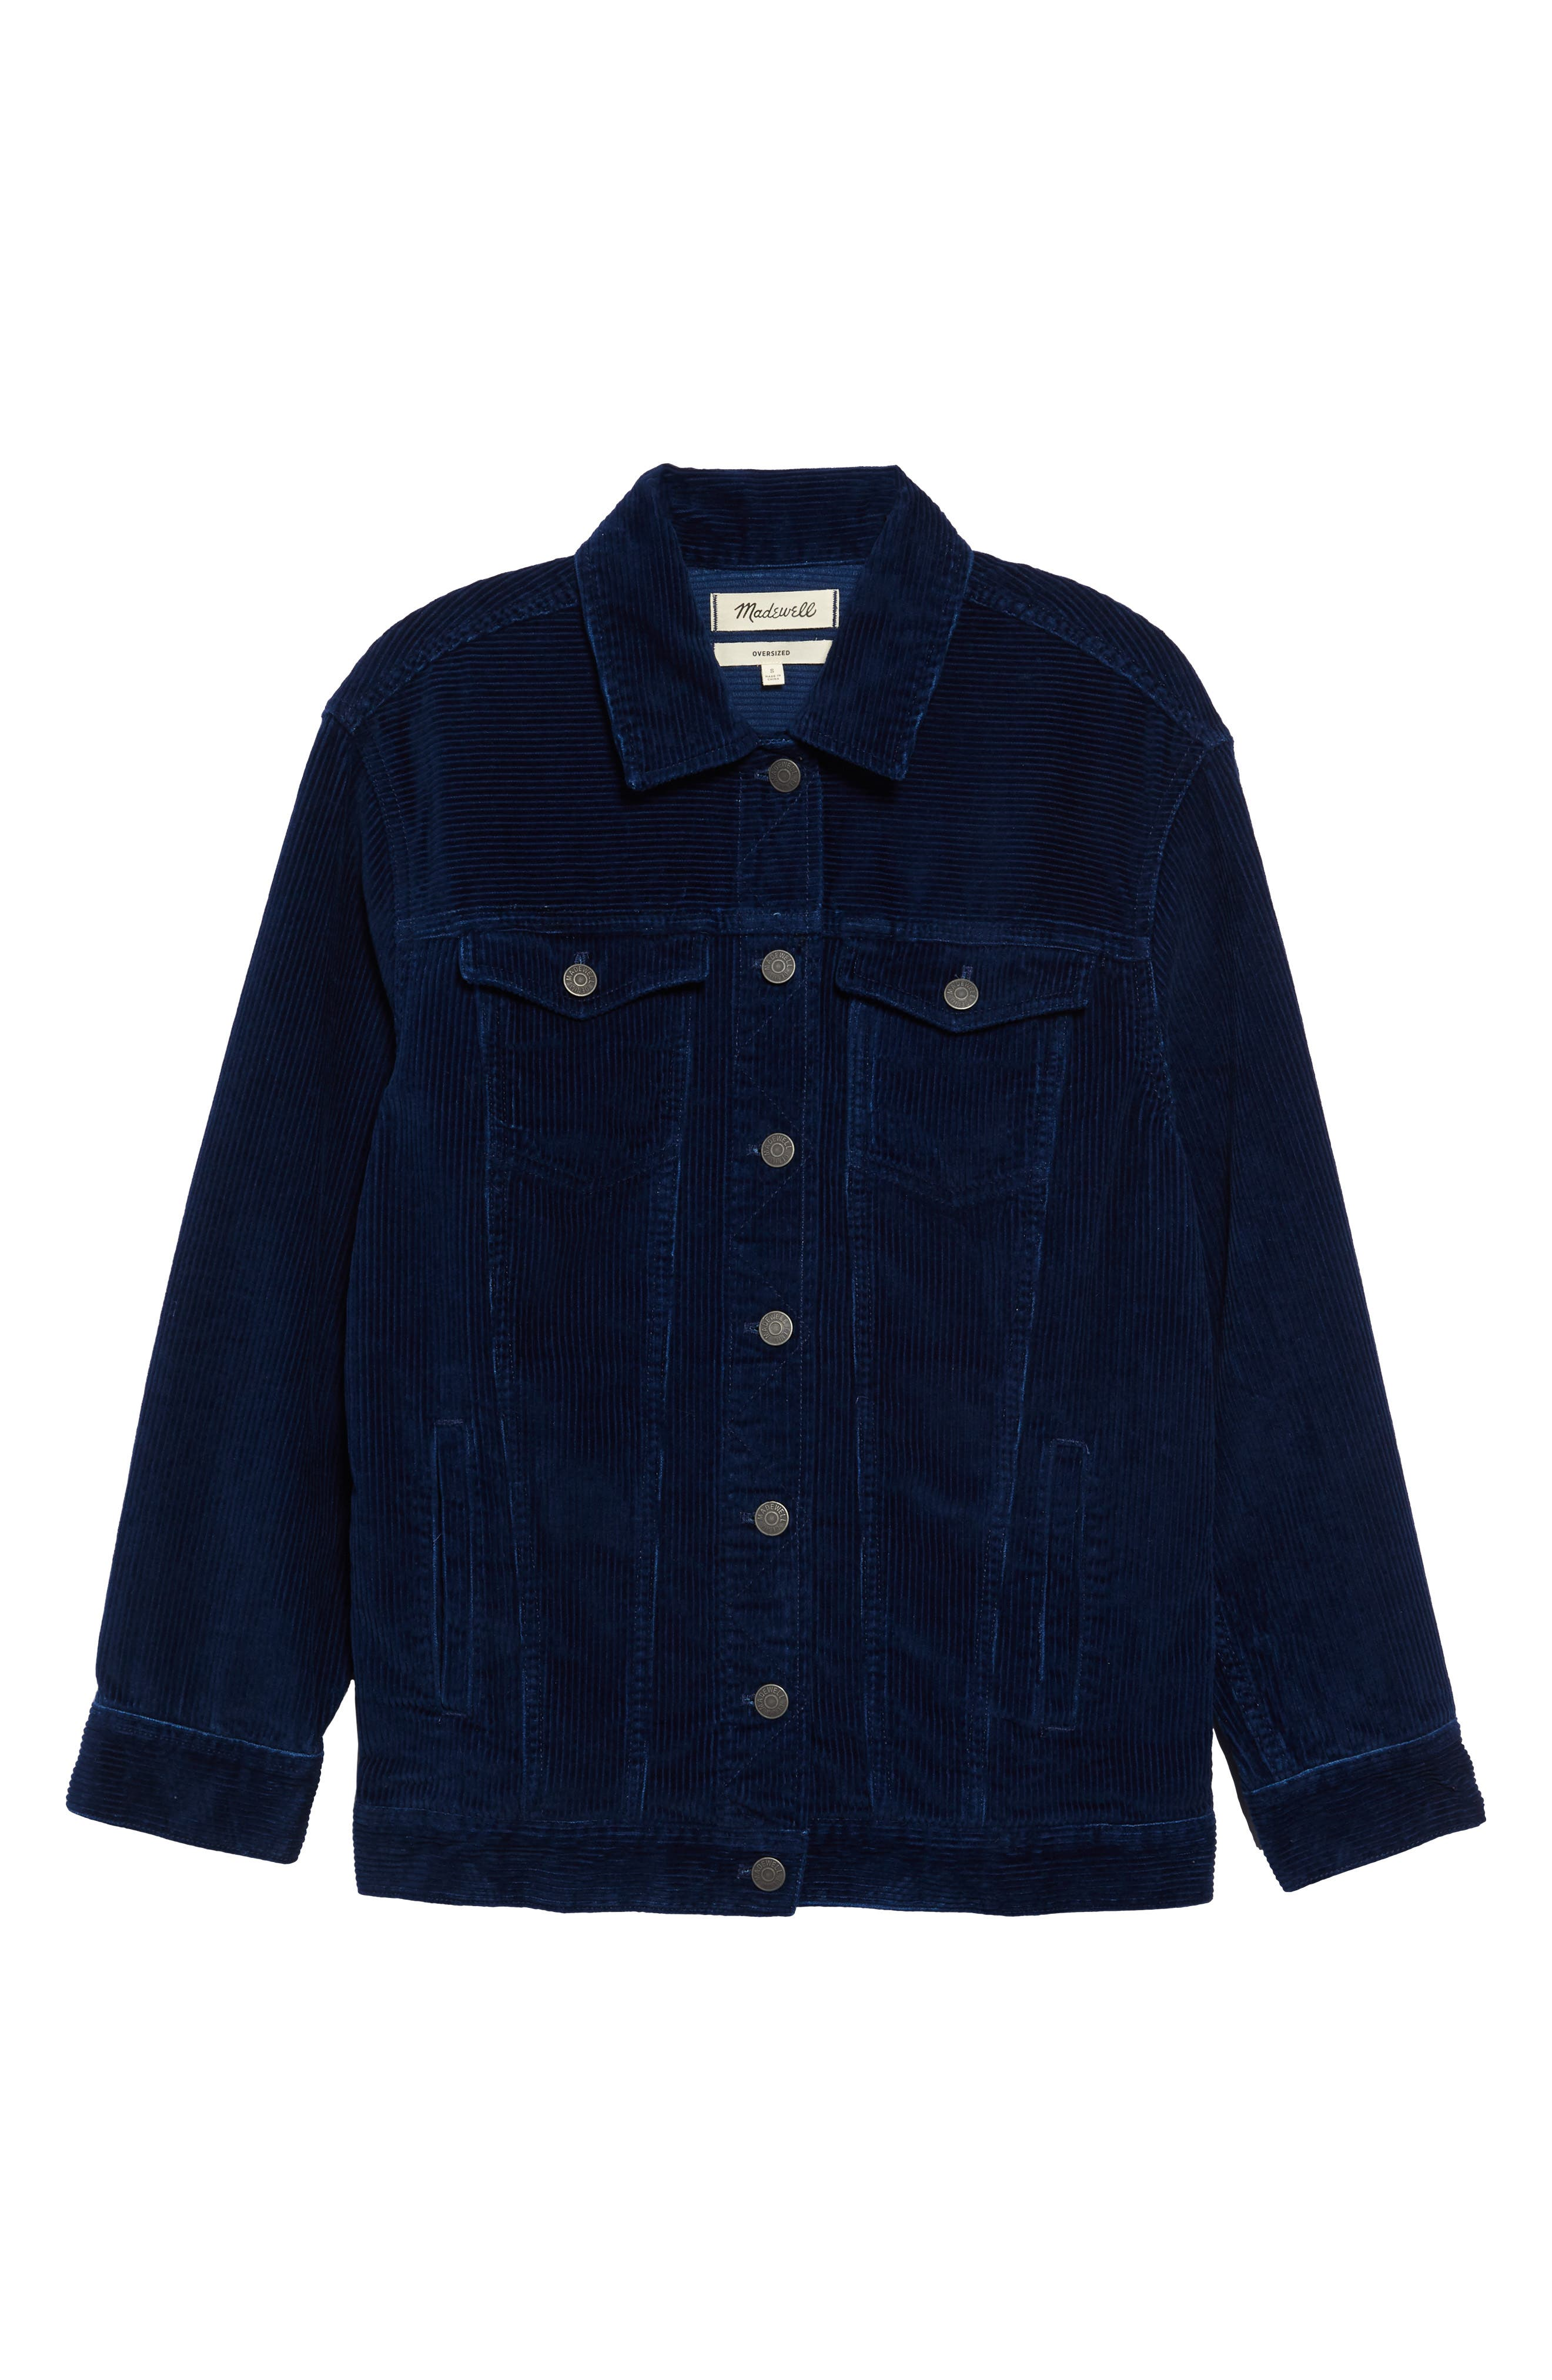 Madewell The Oversize Jean Jacket: Corduroy Edition